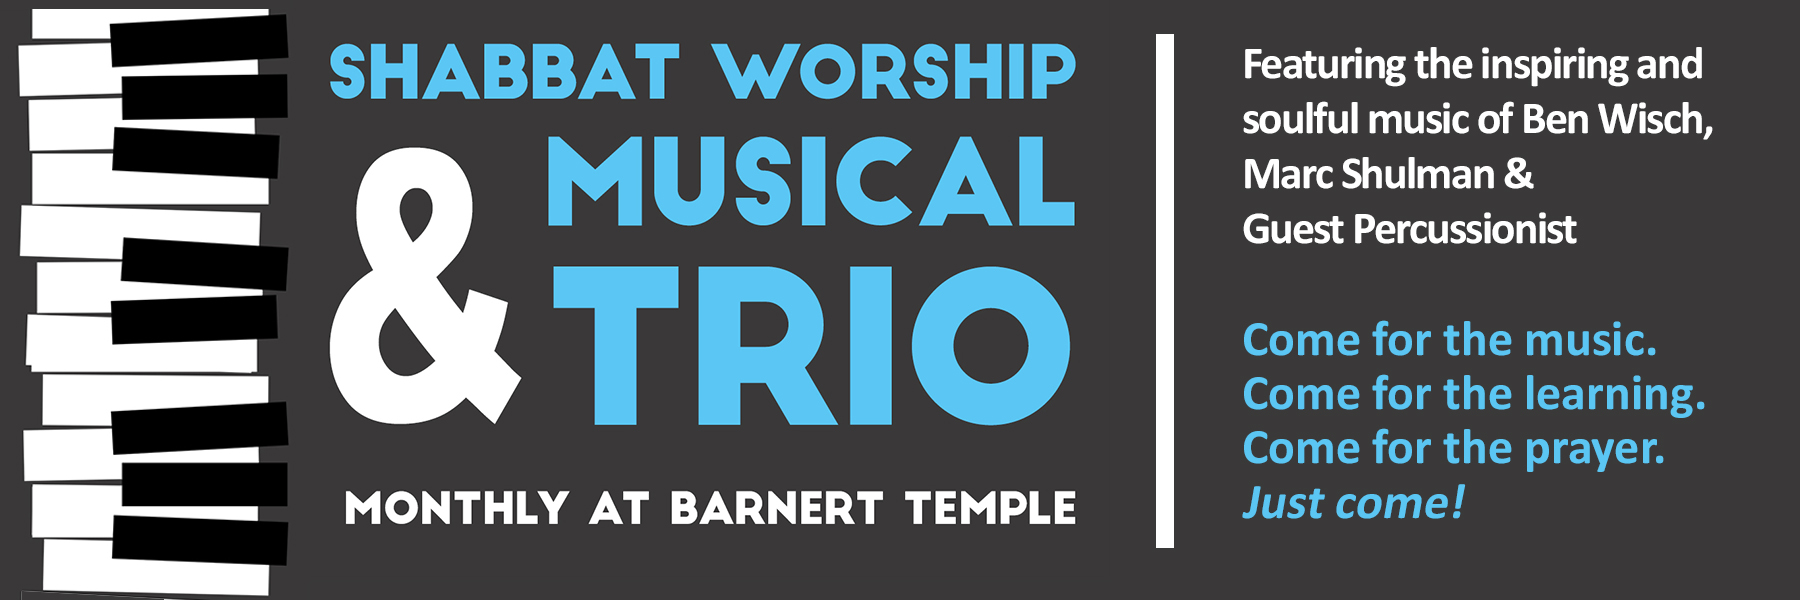 """<a href=""""https://www.barnerttemple.org/event/shabbat-service-with-musical-trio.html""""                                     target=""""_blank"""">                                                                 <span class=""""slider_title"""">                                     Friday, Feb. 28, at 7:30 p.m.                                </span>                                                                 </a>                                                                                                                                                                                       <span class=""""slider_description"""">Join us for a special Shabbat with the musical trio of Ben Wisch (keyboards), Marc Shulman (electric guitar) and Joe Bonadio (percussion).  They'll help us celebrate Shabbat with their soulful and inspiring sounds.</span>"""